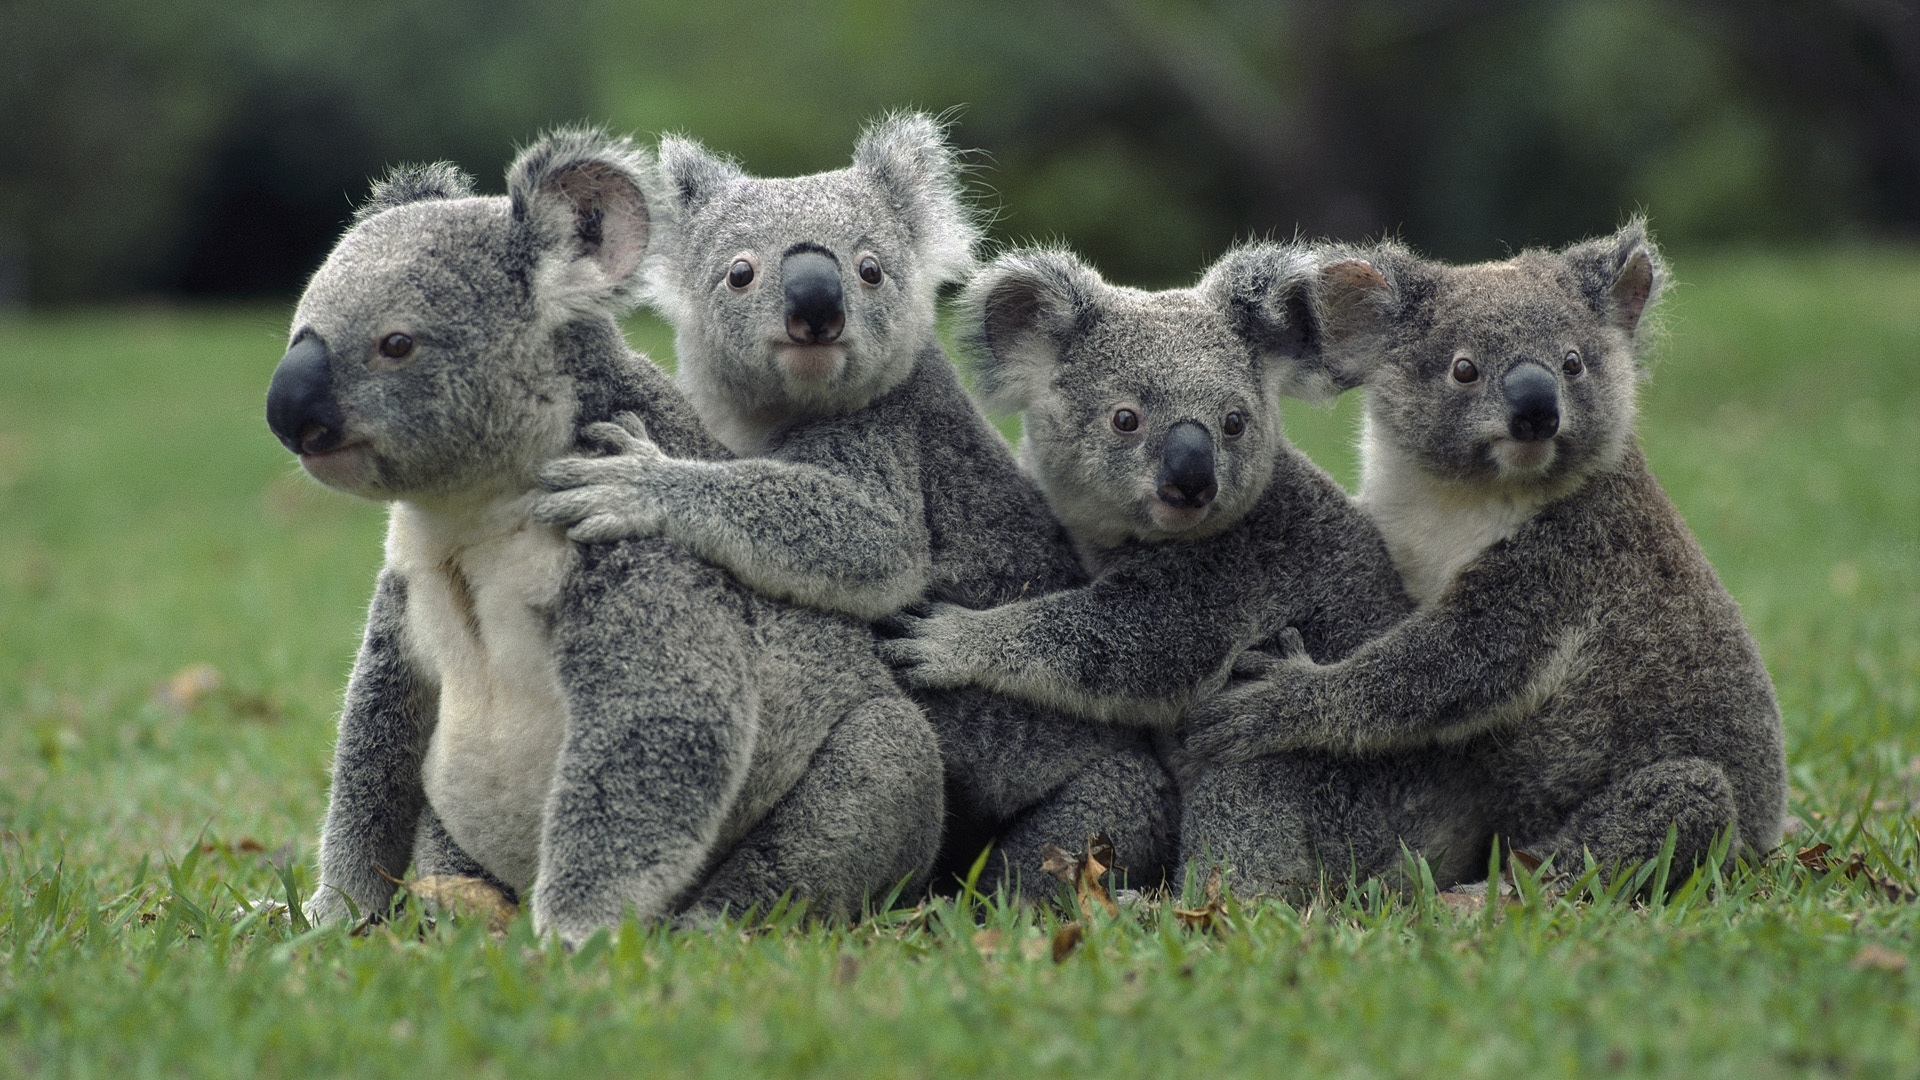 41800 download wallpaper Animals, Koalas screensavers and pictures for free